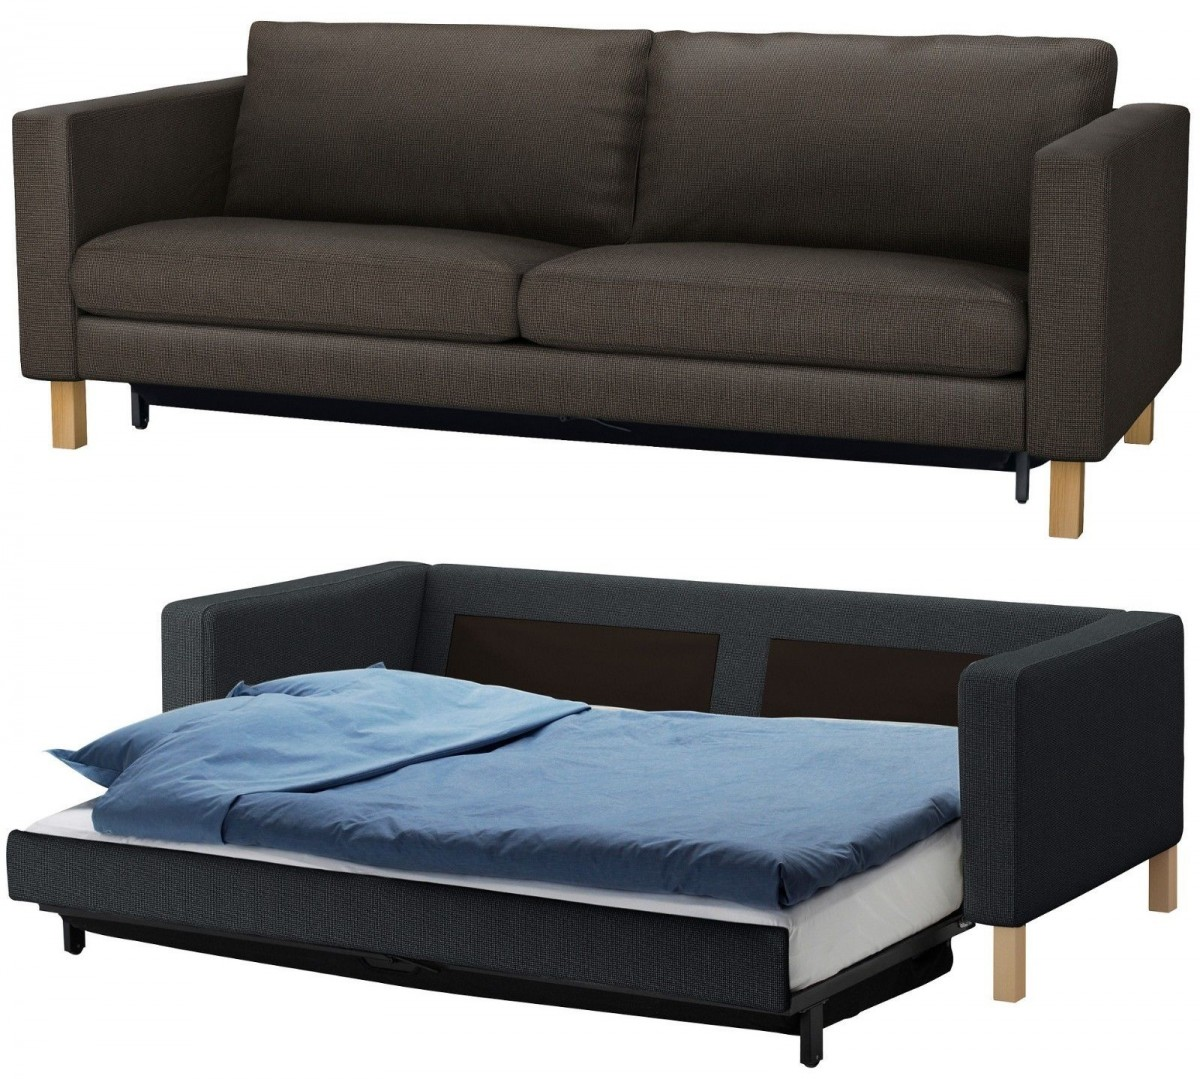 sectional sleeper sofa ikea photo - 2